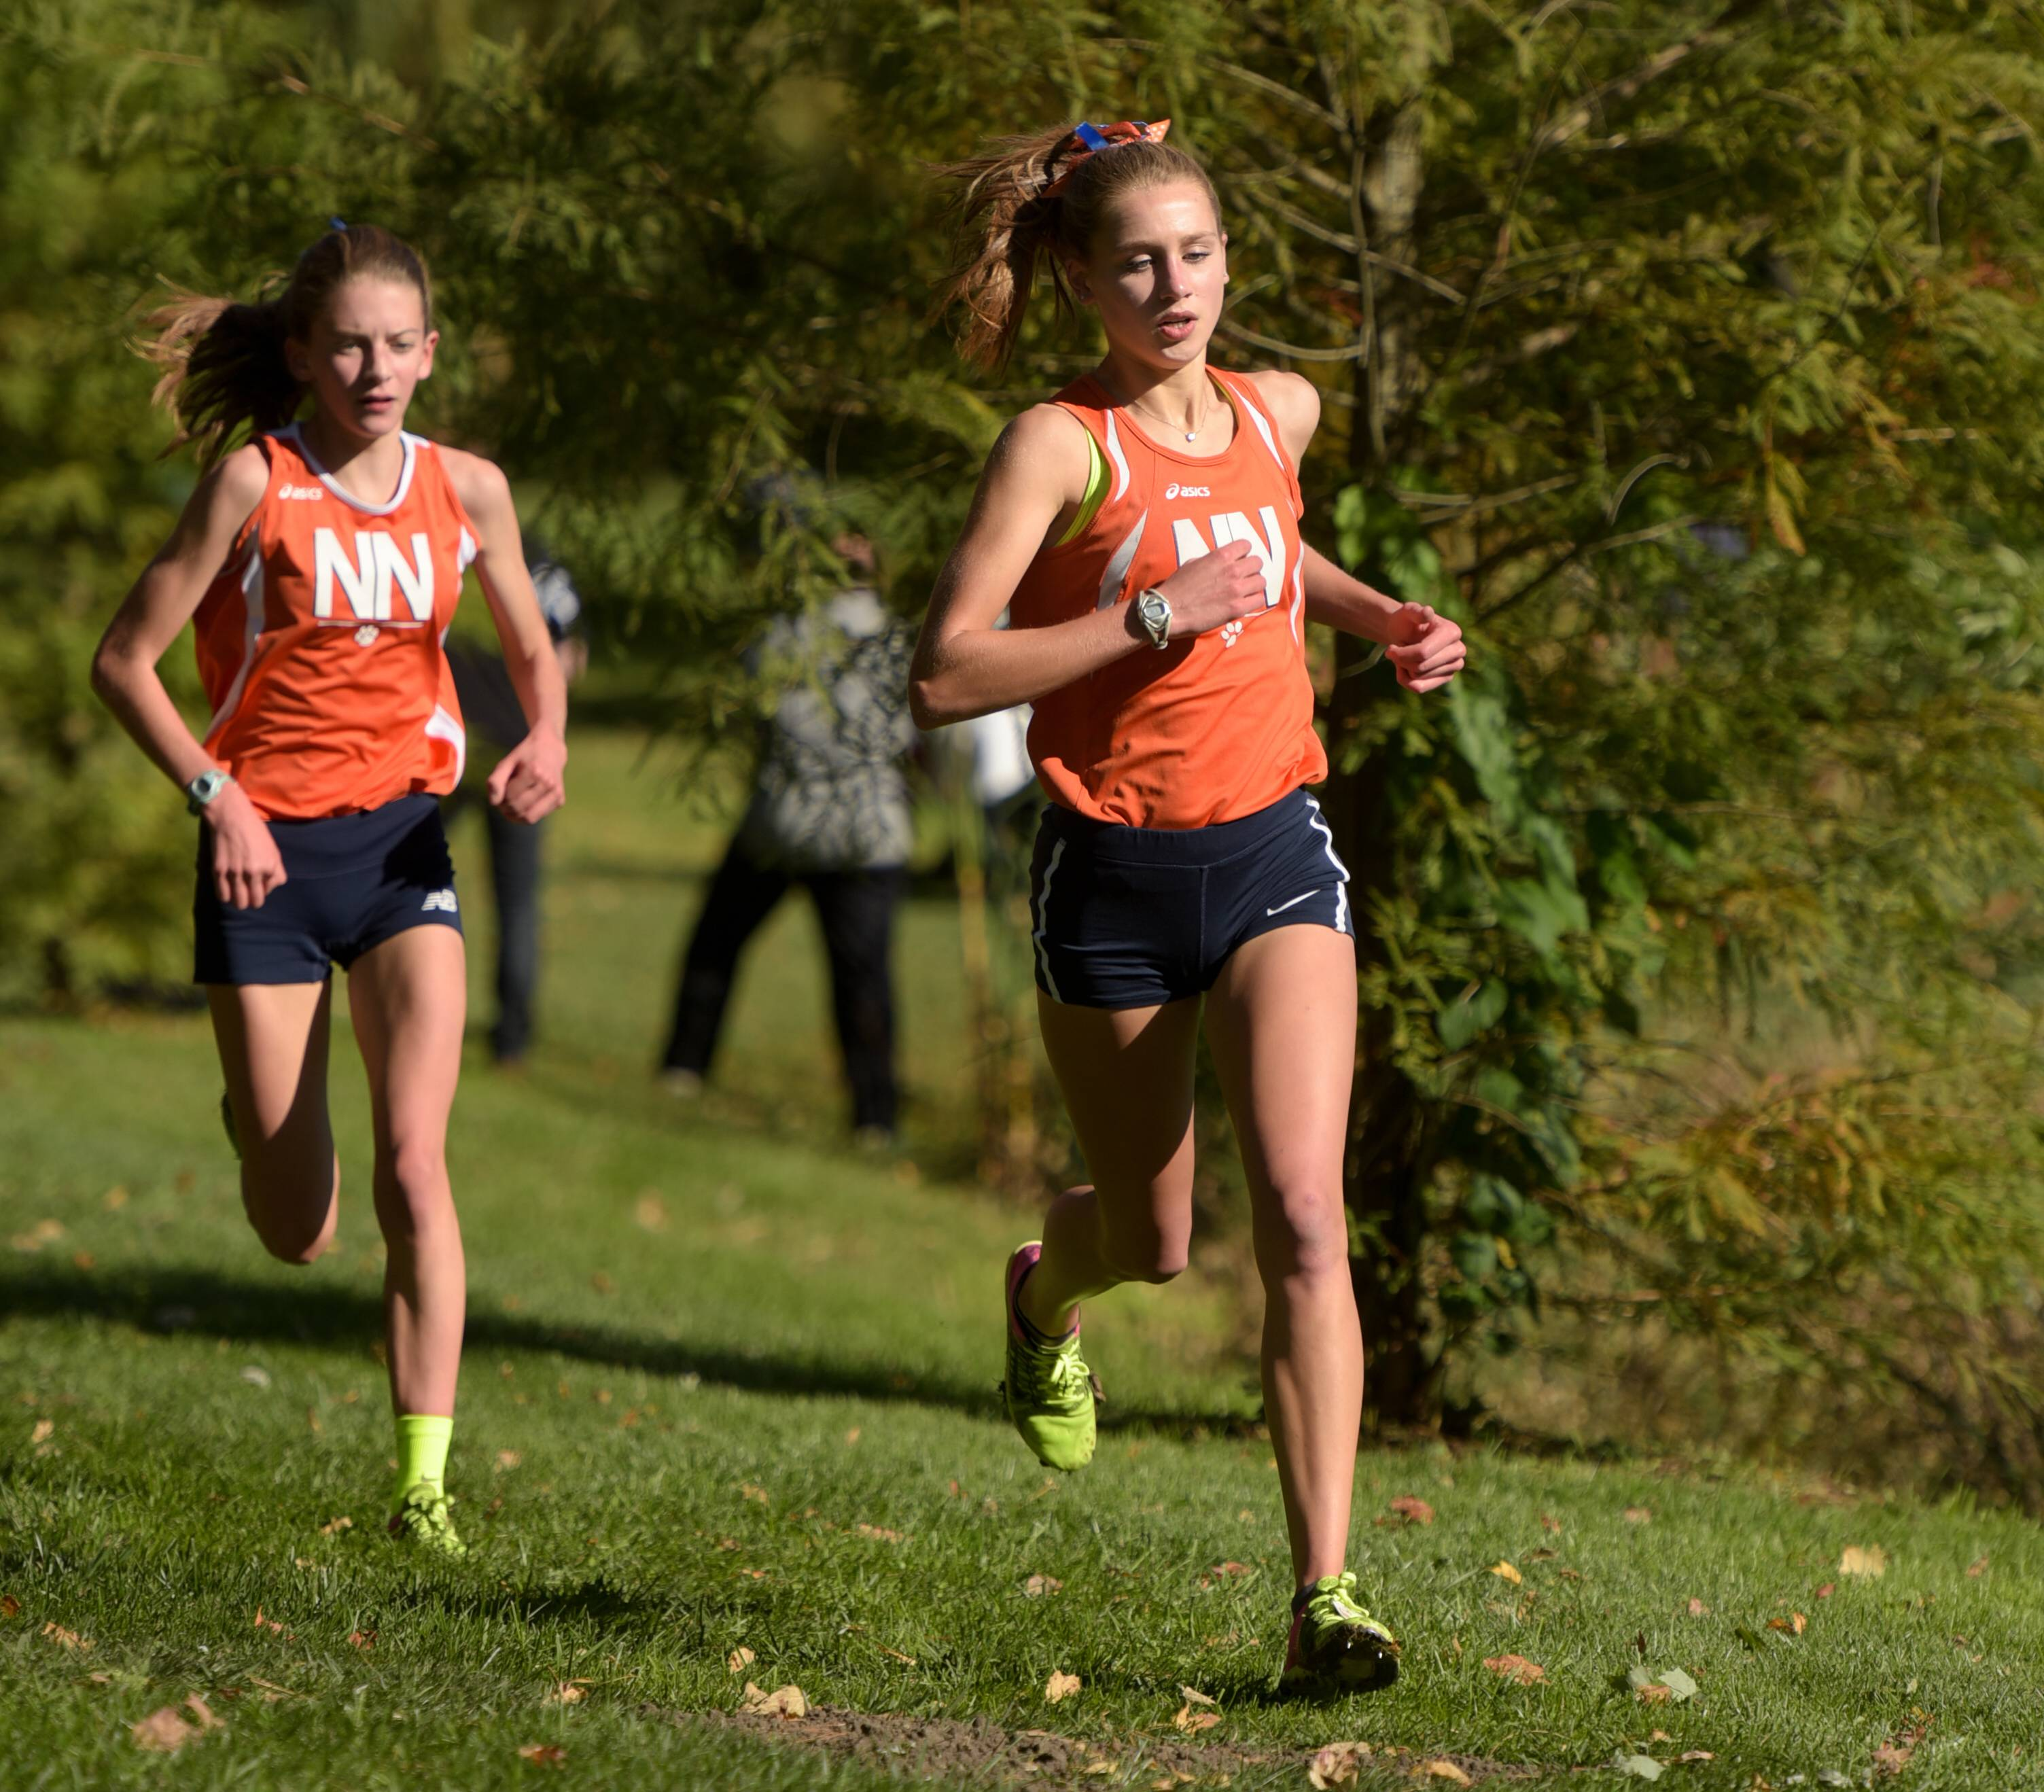 Naperville North's Alex Morris and Sarah Schmitt run the course during DuPage Valley Conference girls cross country meet at St. James Farm forest preserve on October 16, 2017. Schmitt and Morris placed first and second in the meet.